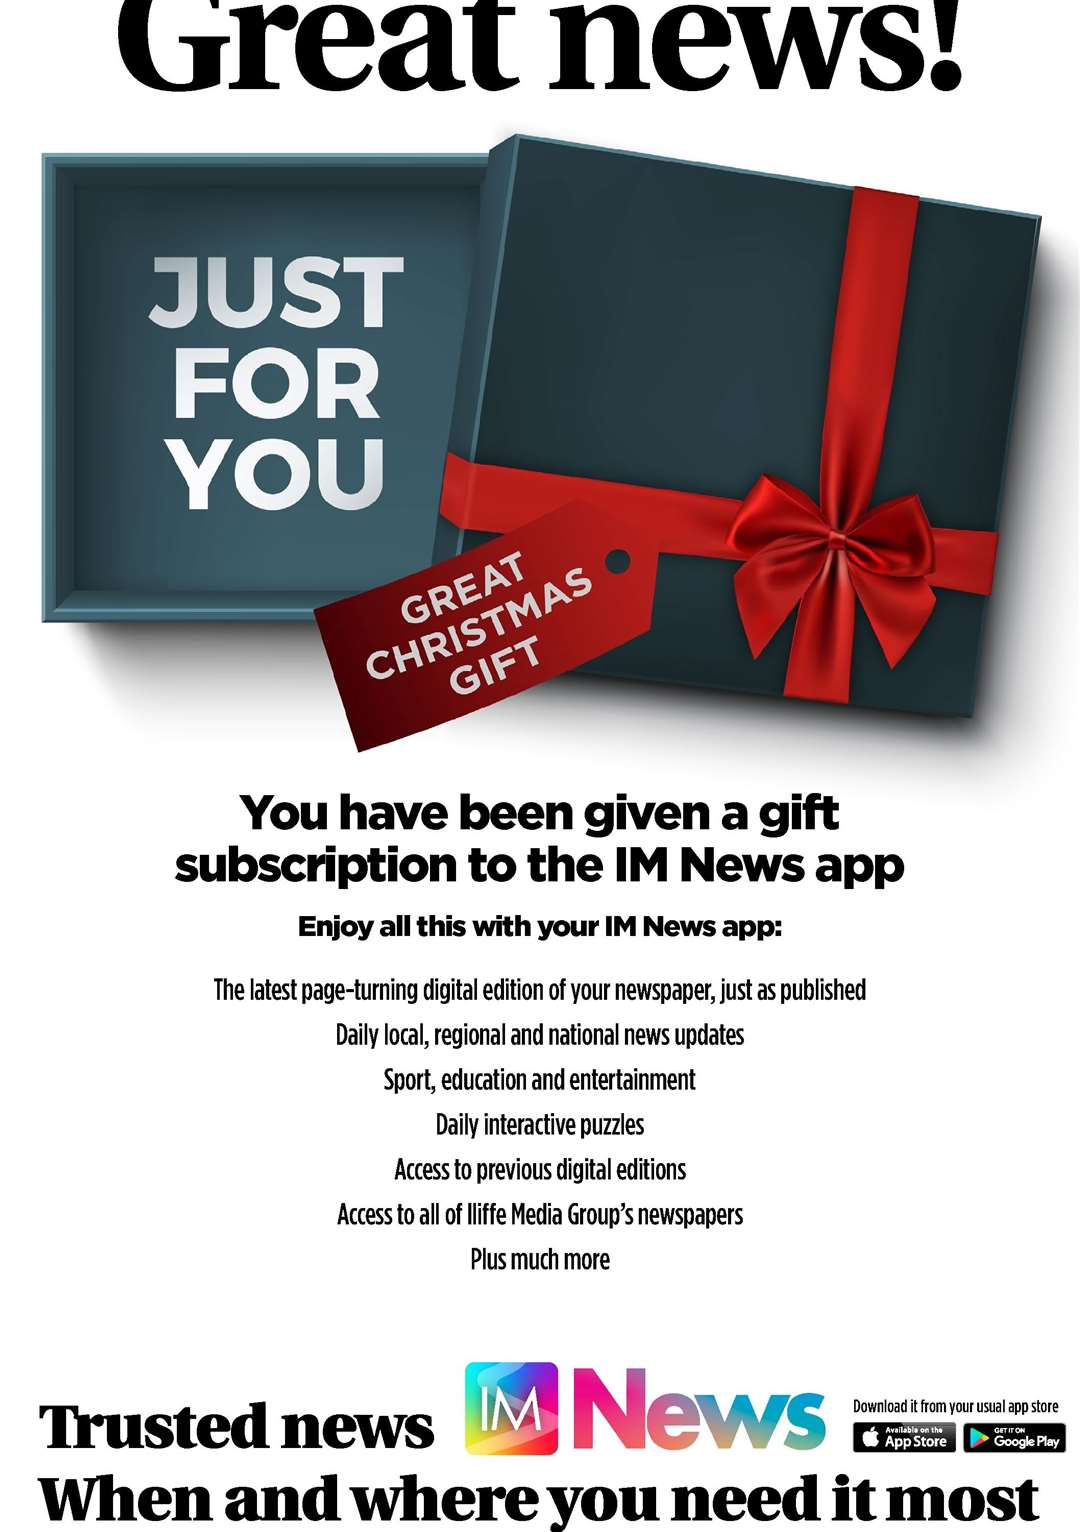 A poster for the Lynn News (Iliffe Media) app which you can subscribe to